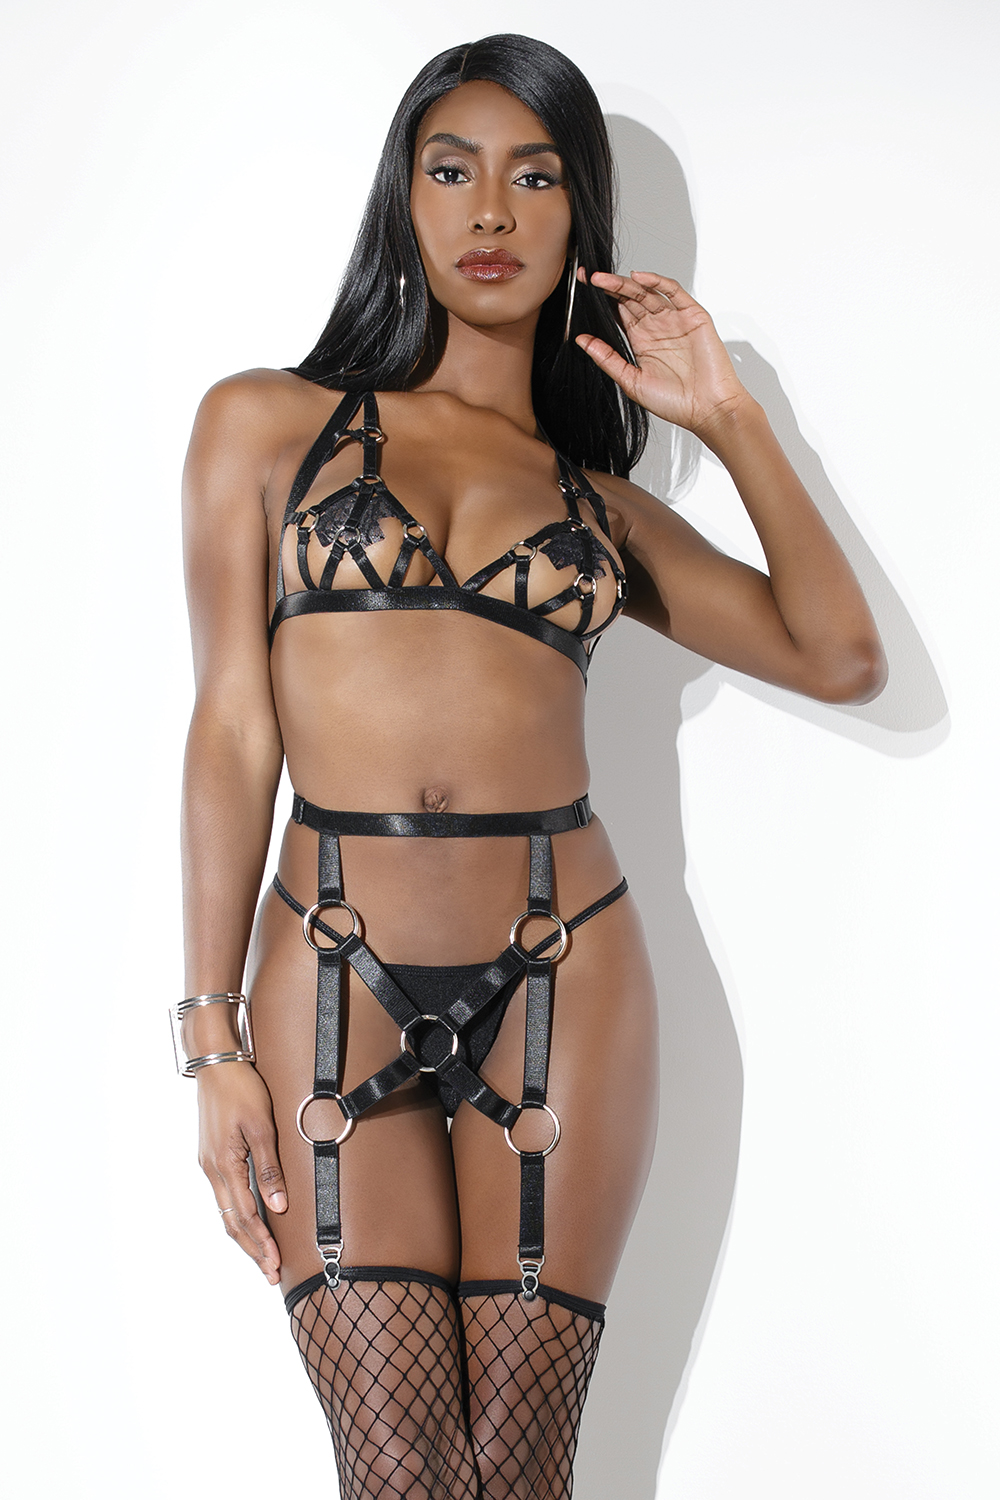 2-piece elastic harness set bra garter belt 9373 Edmonton